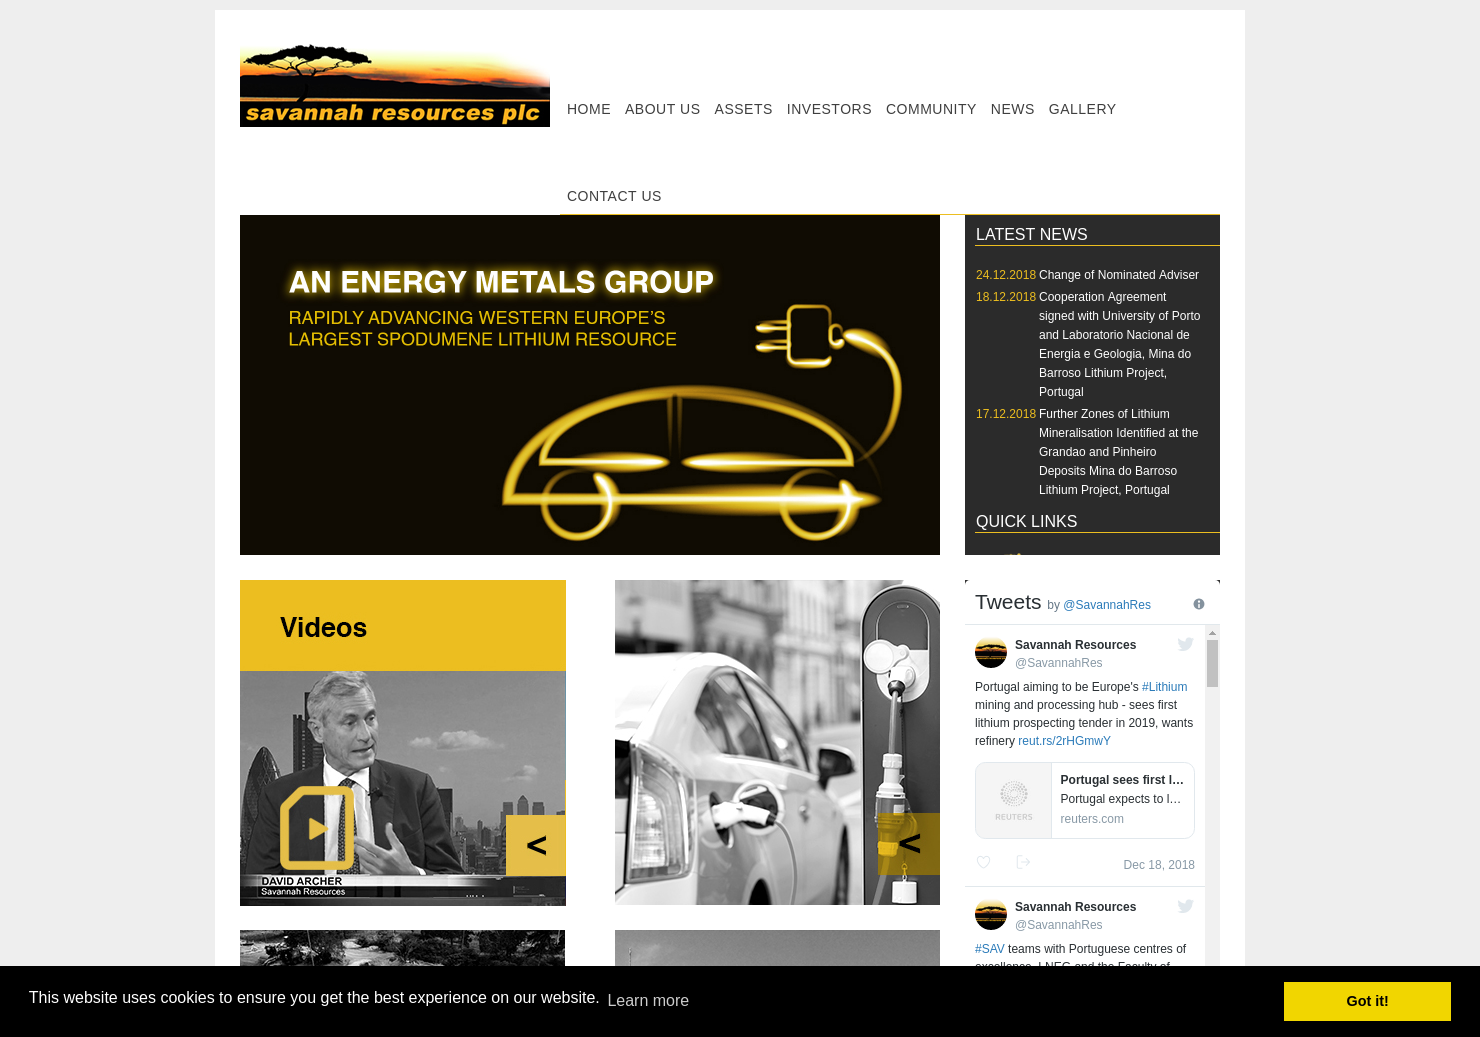 Savannah Resources Home Page